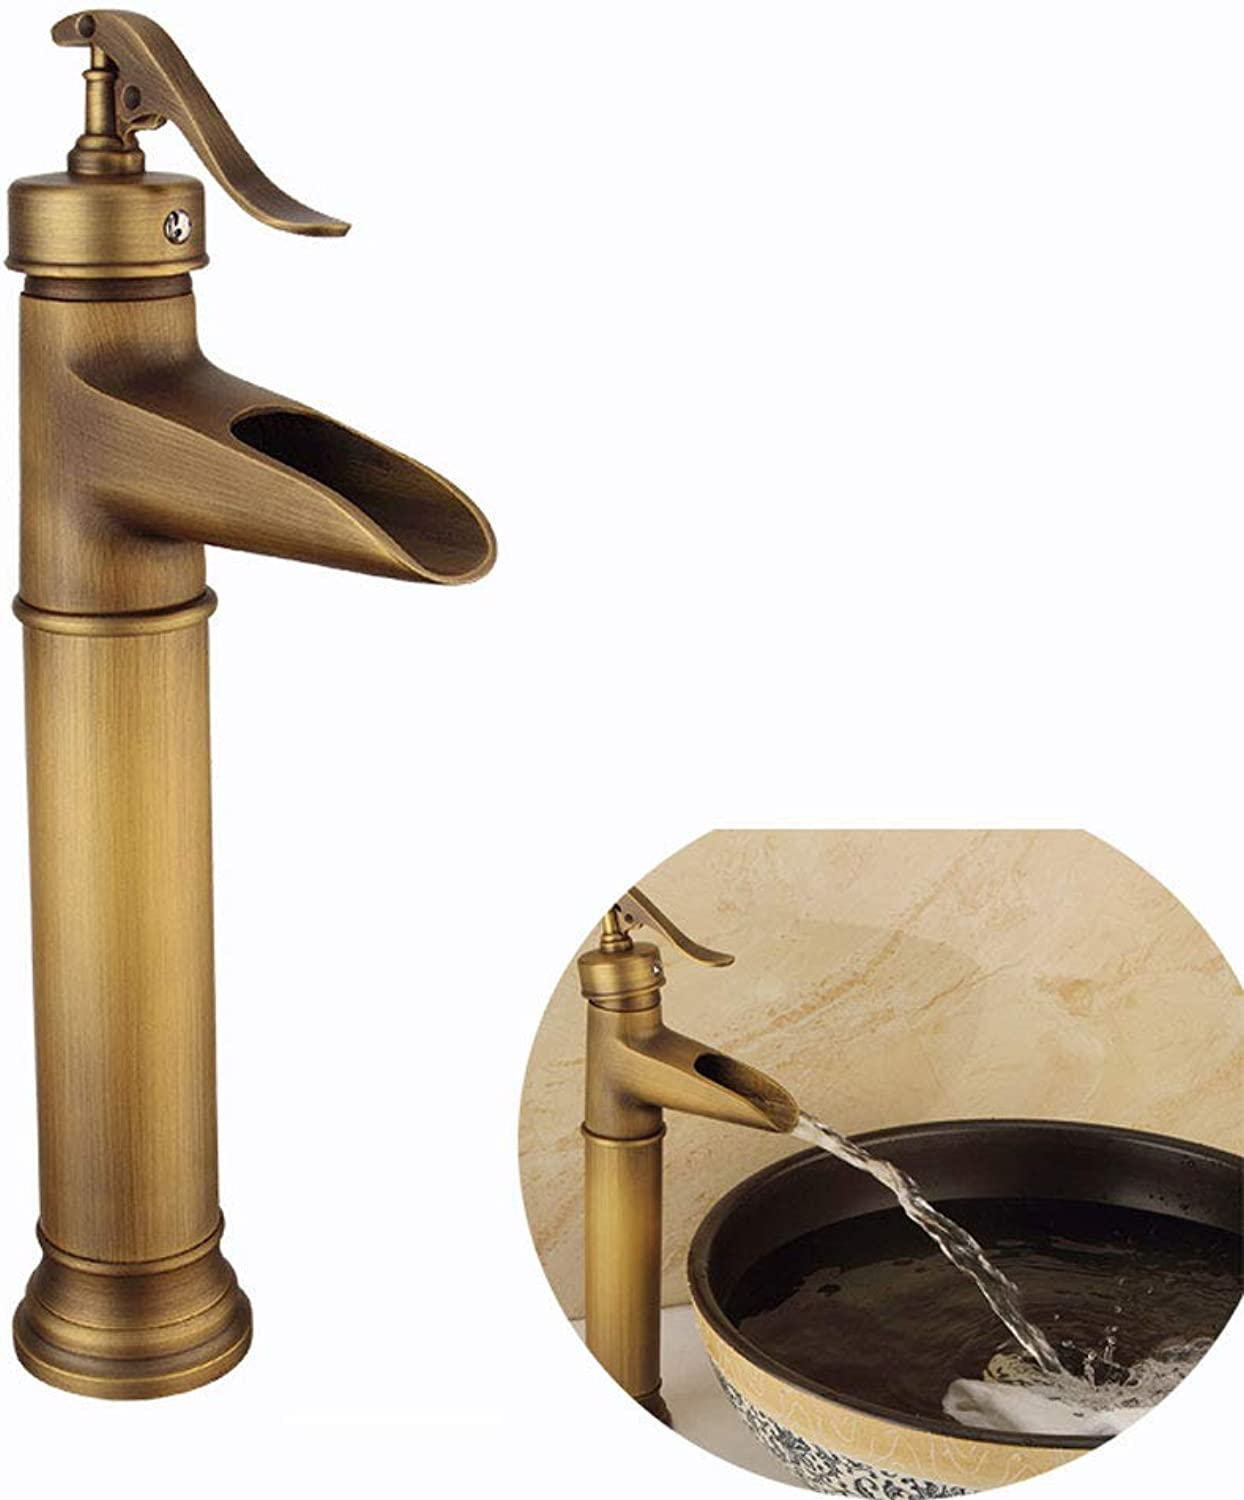 Sanqing Faucet, One-handed Solid Copper Kitchen Bathroom Black Faucet European Retro Hot And Cold Water Mixer,gold,High